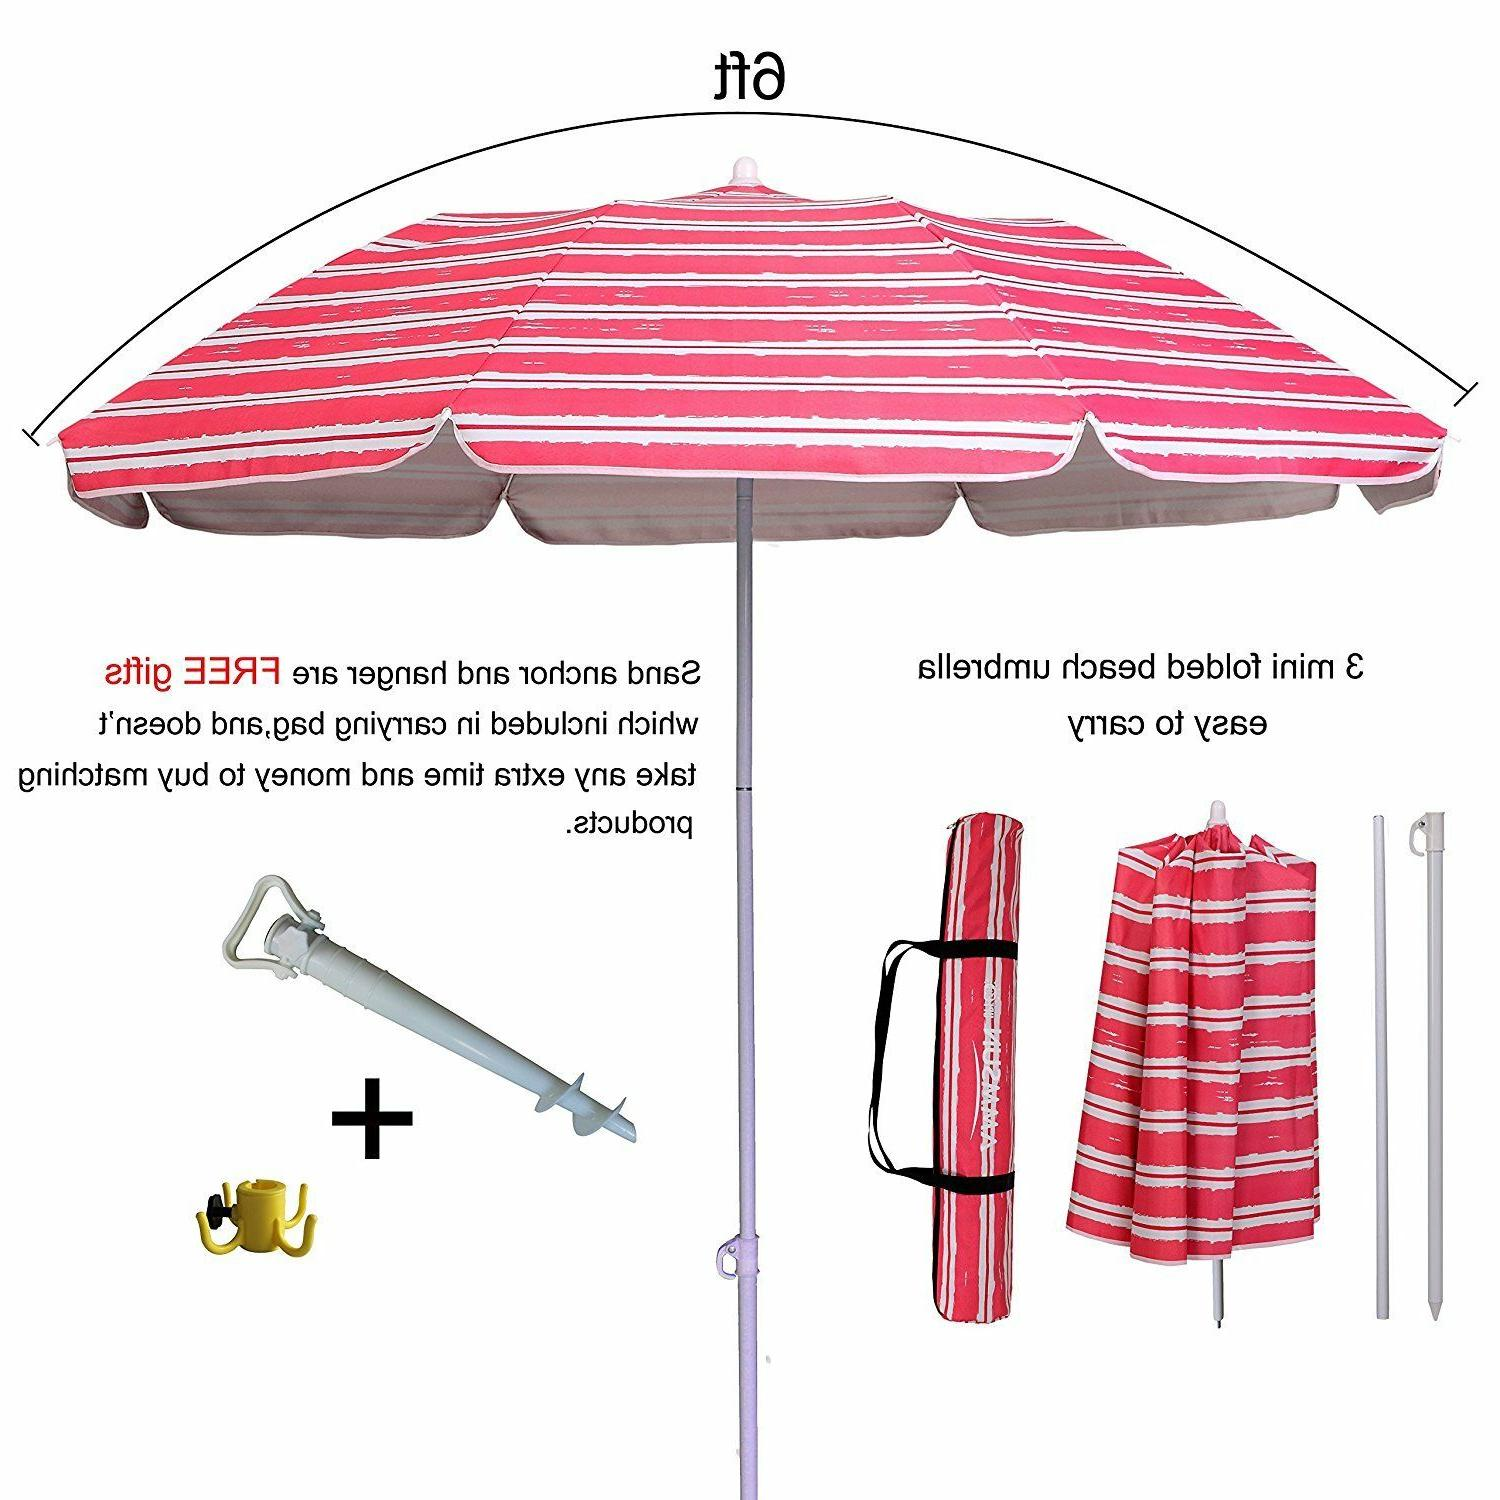 Ammsun 2017 6ft Folded Beach Umbrella with Tilt Portable Cab